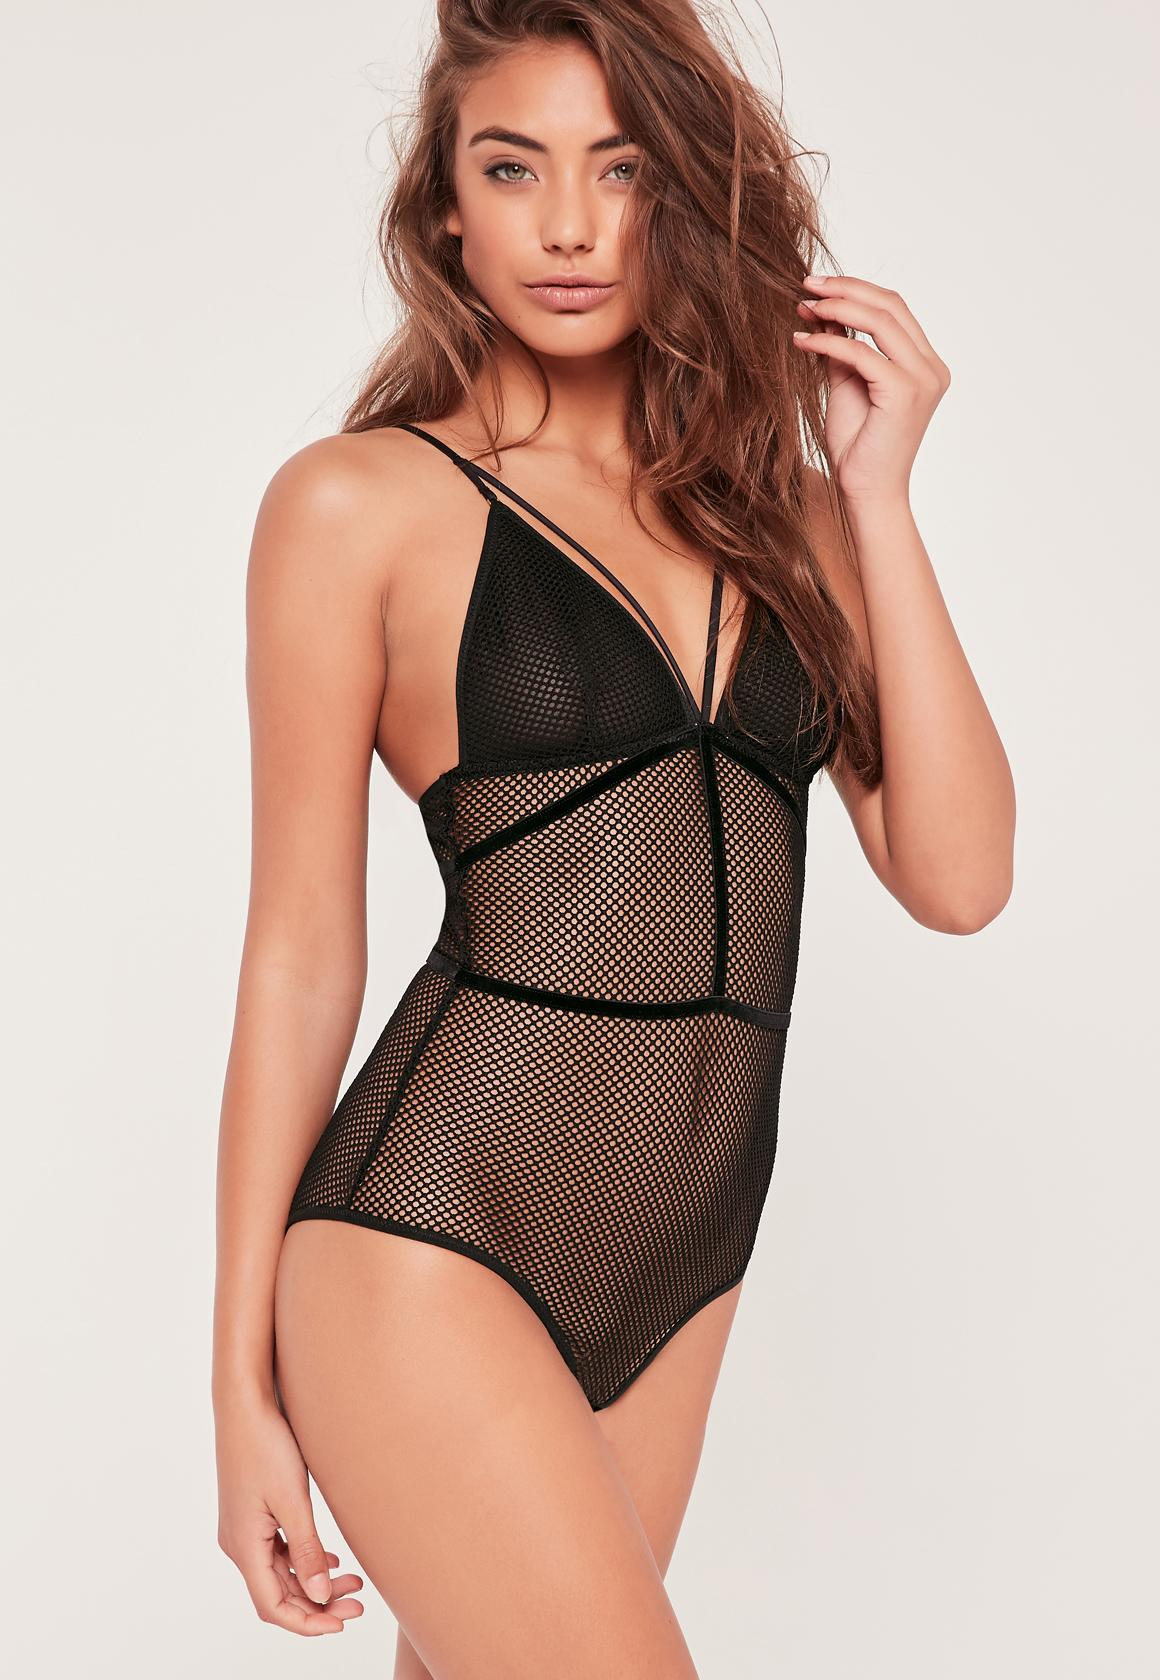 Black Lingerie | Women's Black Lingerie Online - Missguided